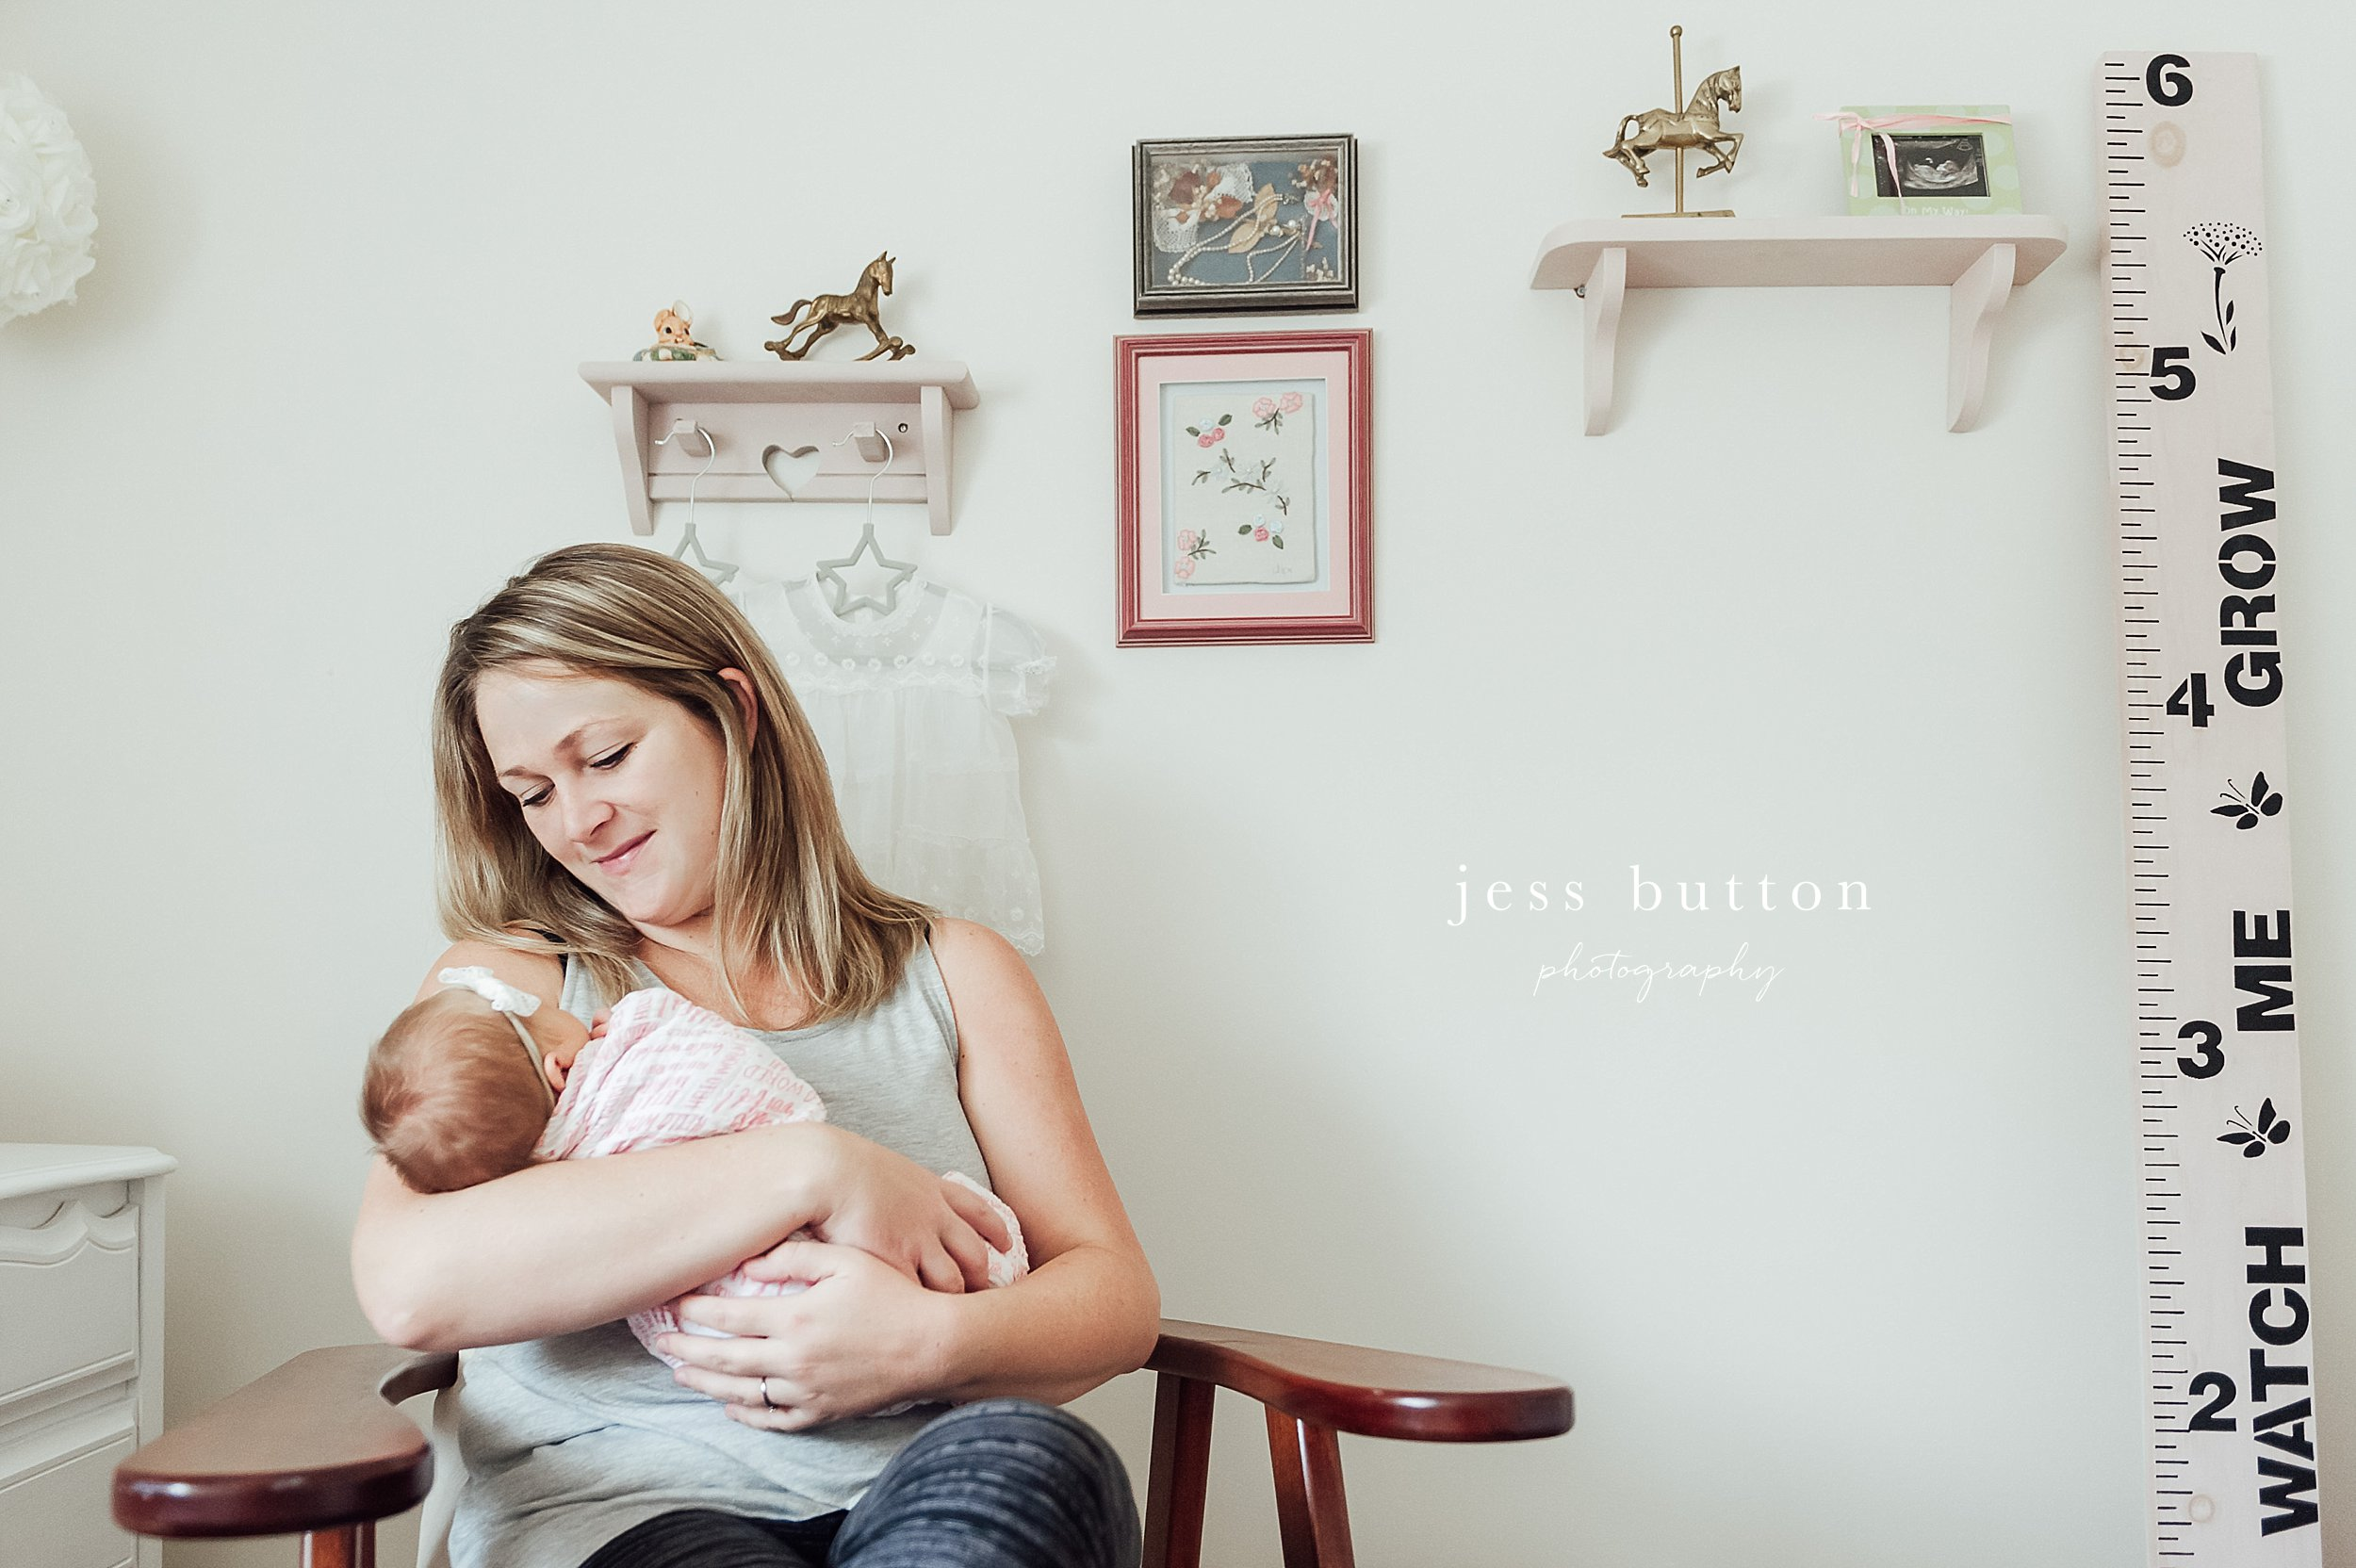 niagara newborn photographer - St Catharines baby photographer - new mother holding baby in nursery at home